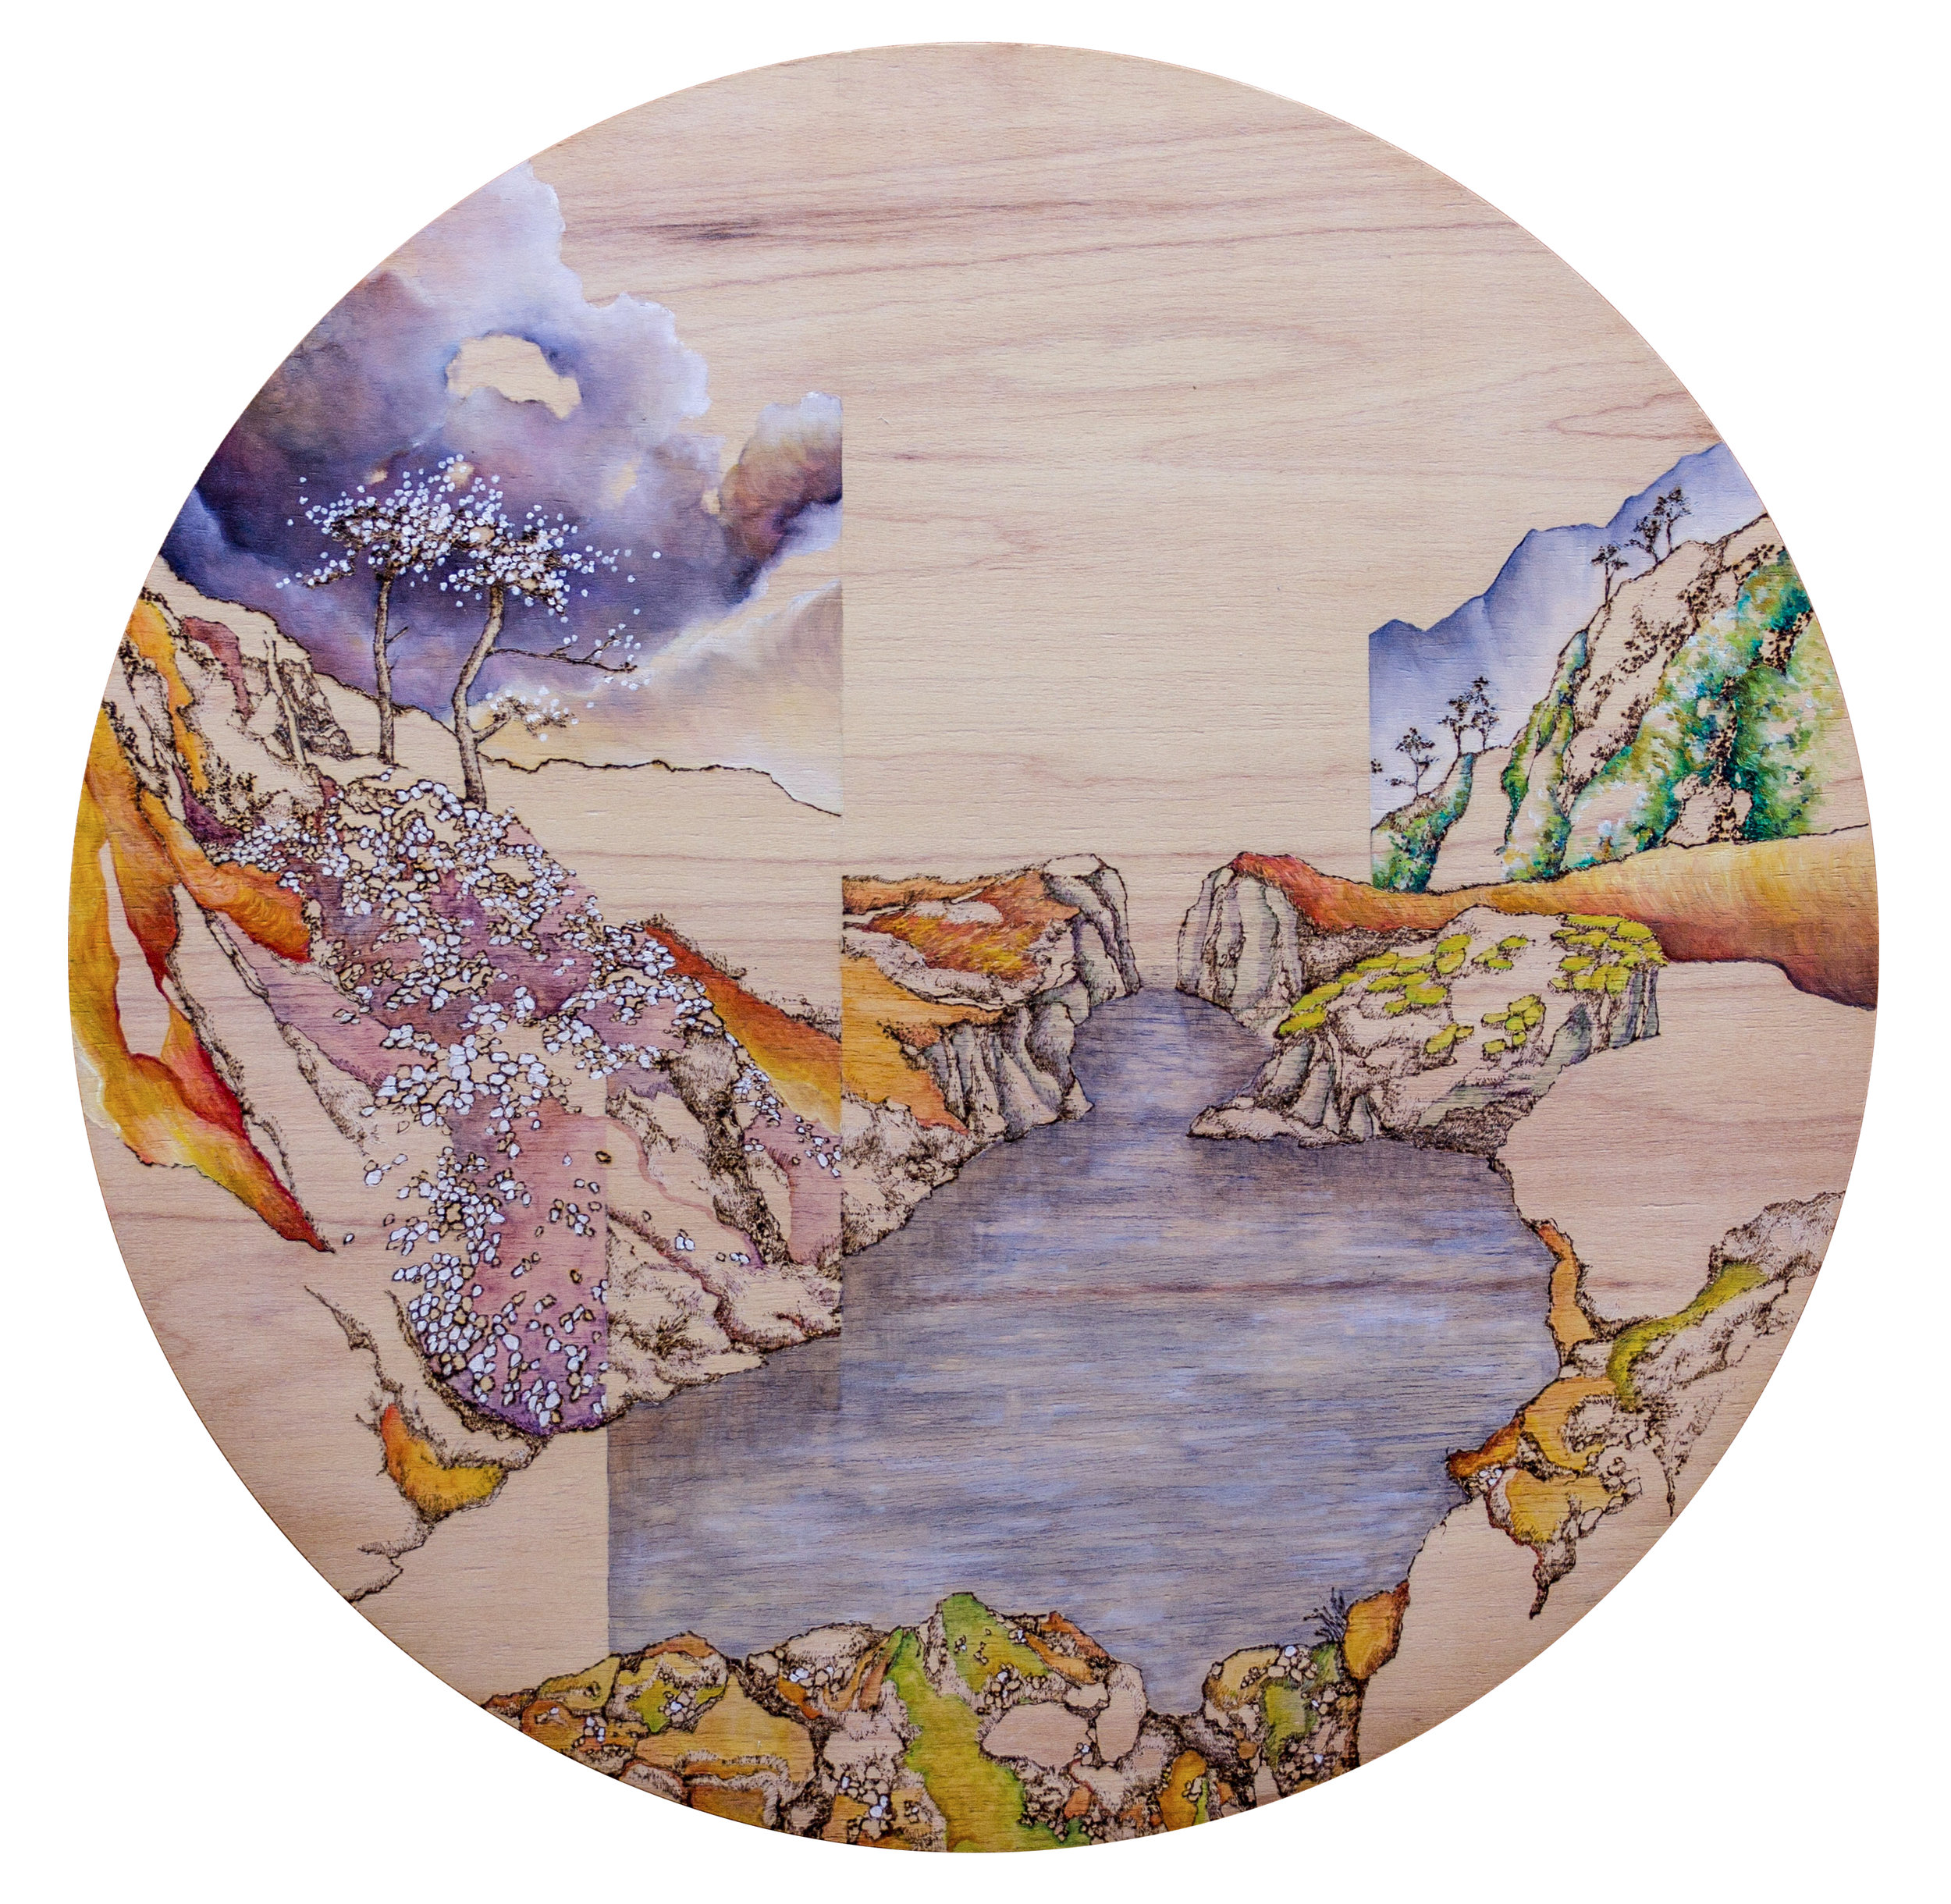 Passage, 2016. Oil and Pyrography on Wood, 51 cm diameter